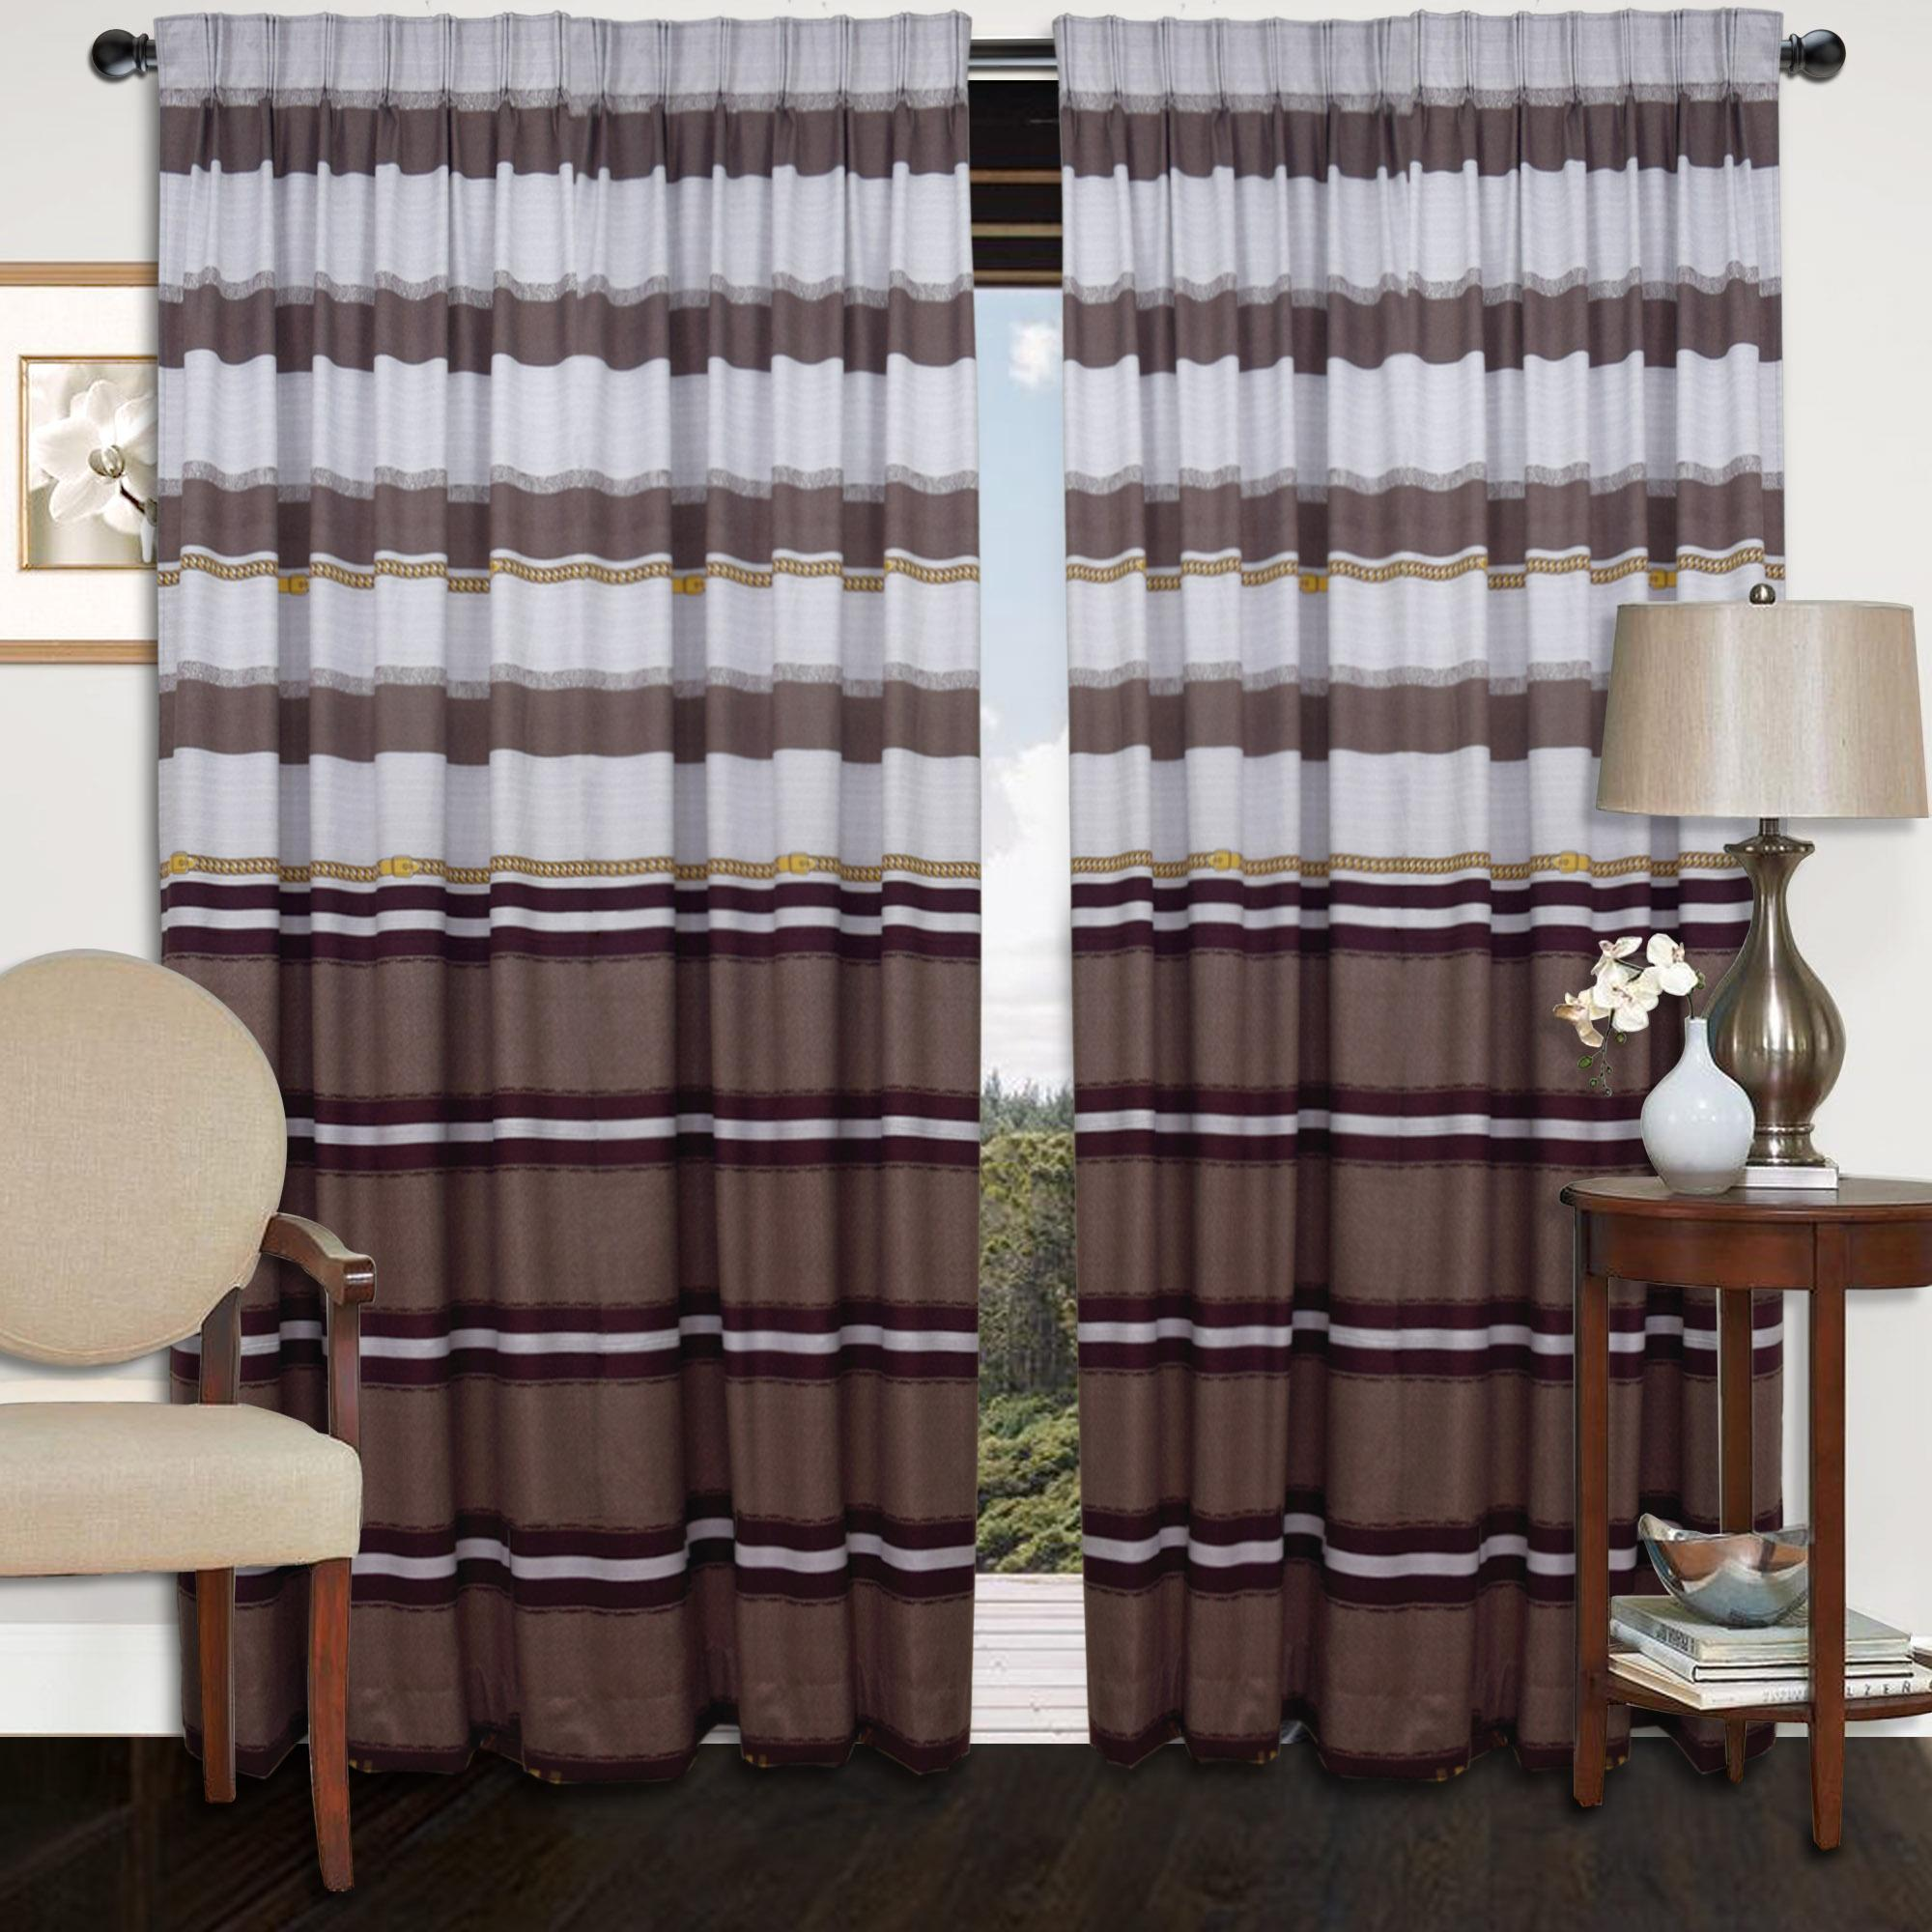 Cozzi Tiffany French Pleated Curtain 1 Layer